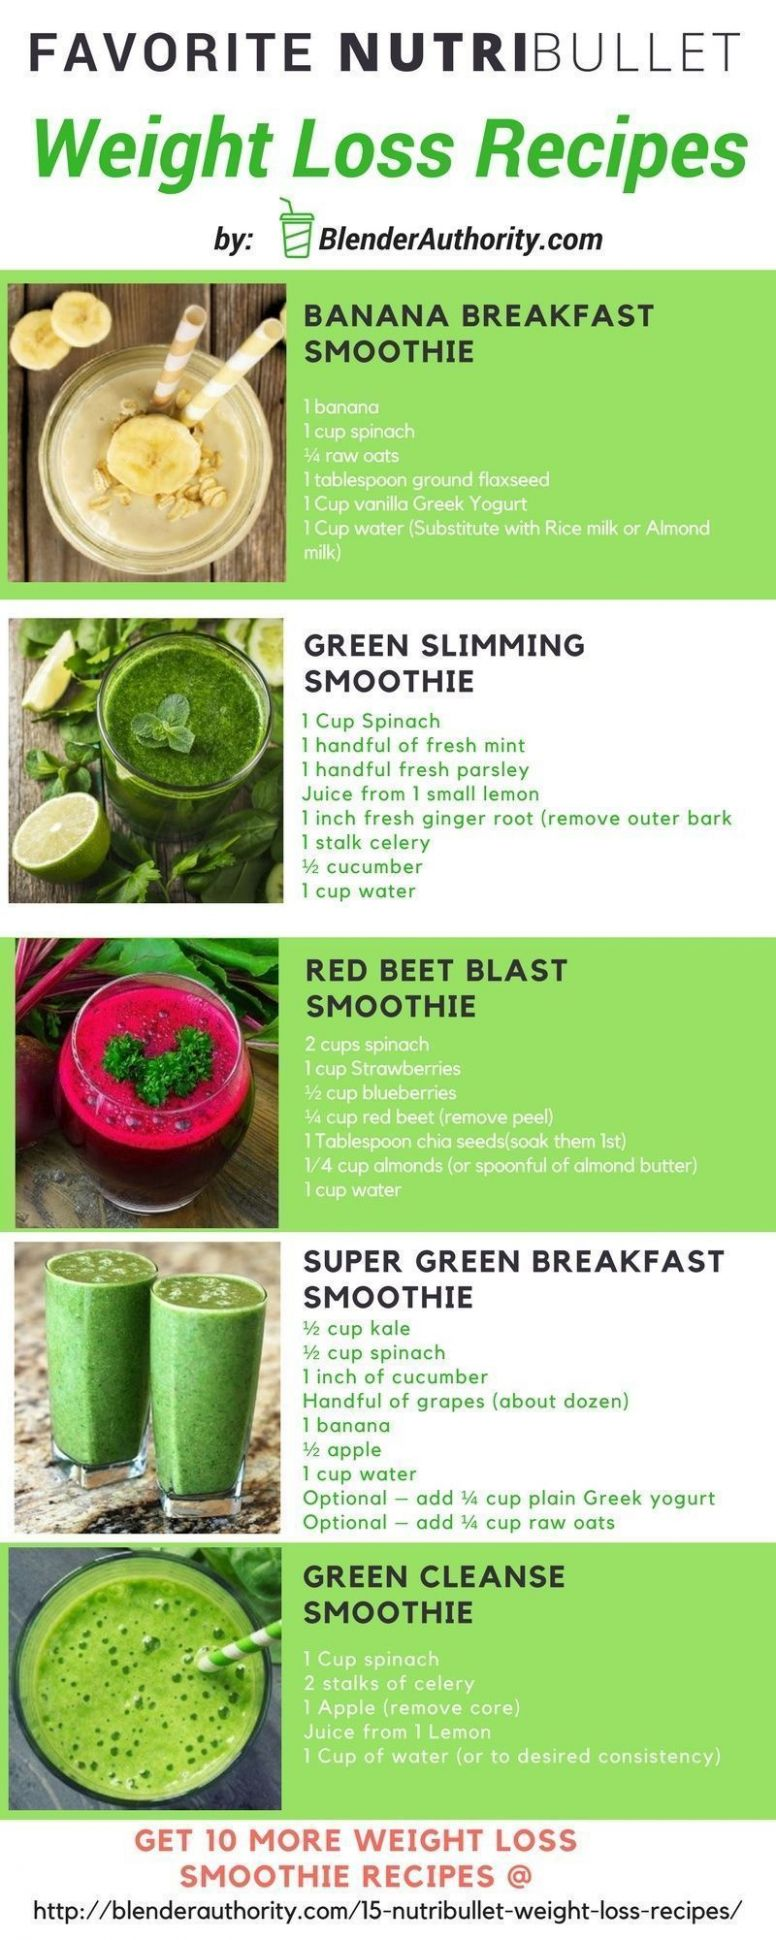 Pin on Vegan - Smoothie Recipe Weight Loss Vegan